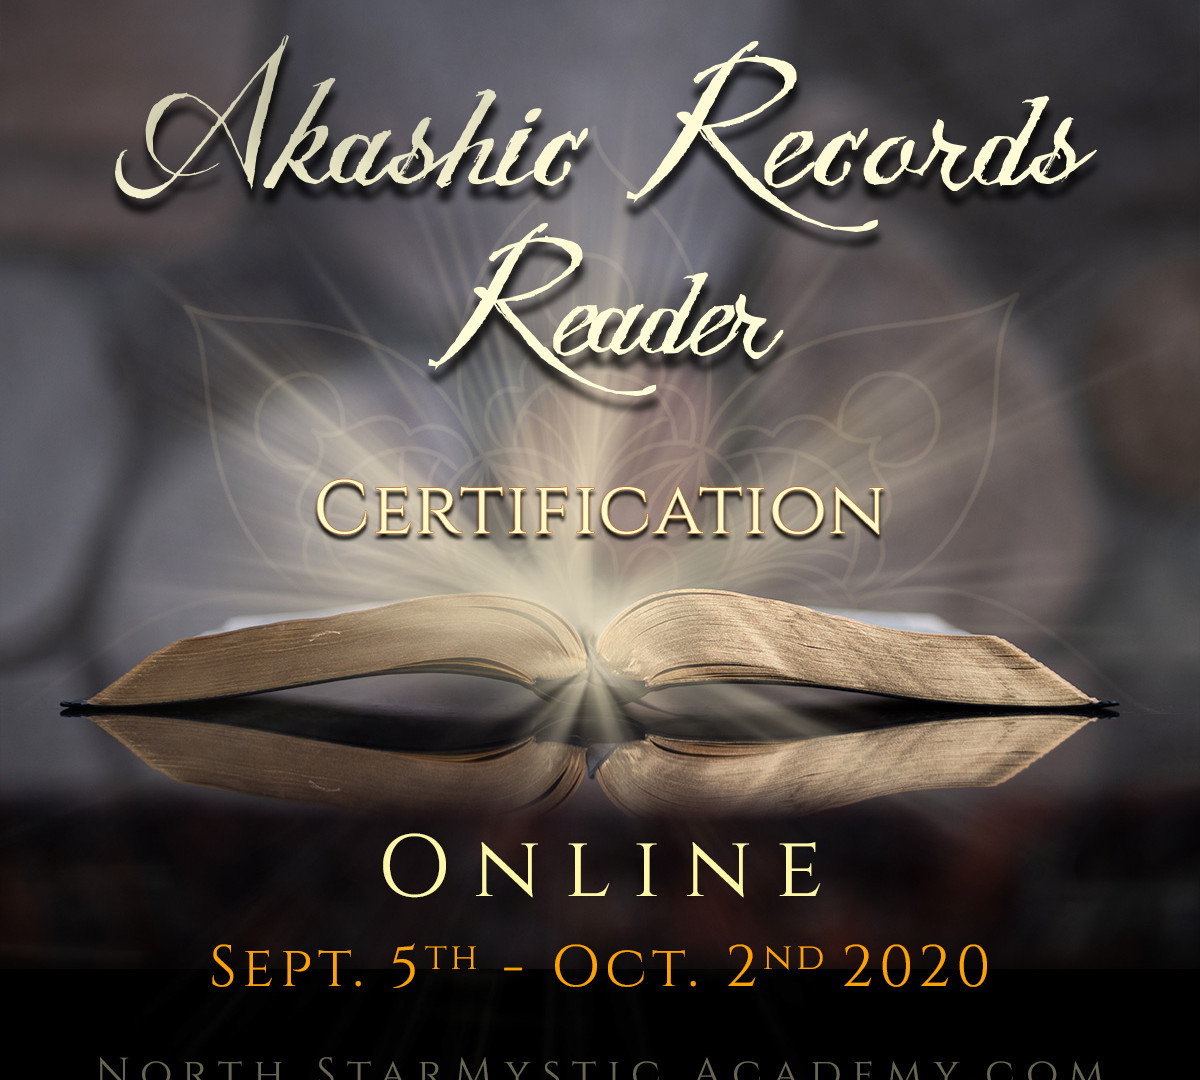 Records cert.jpg